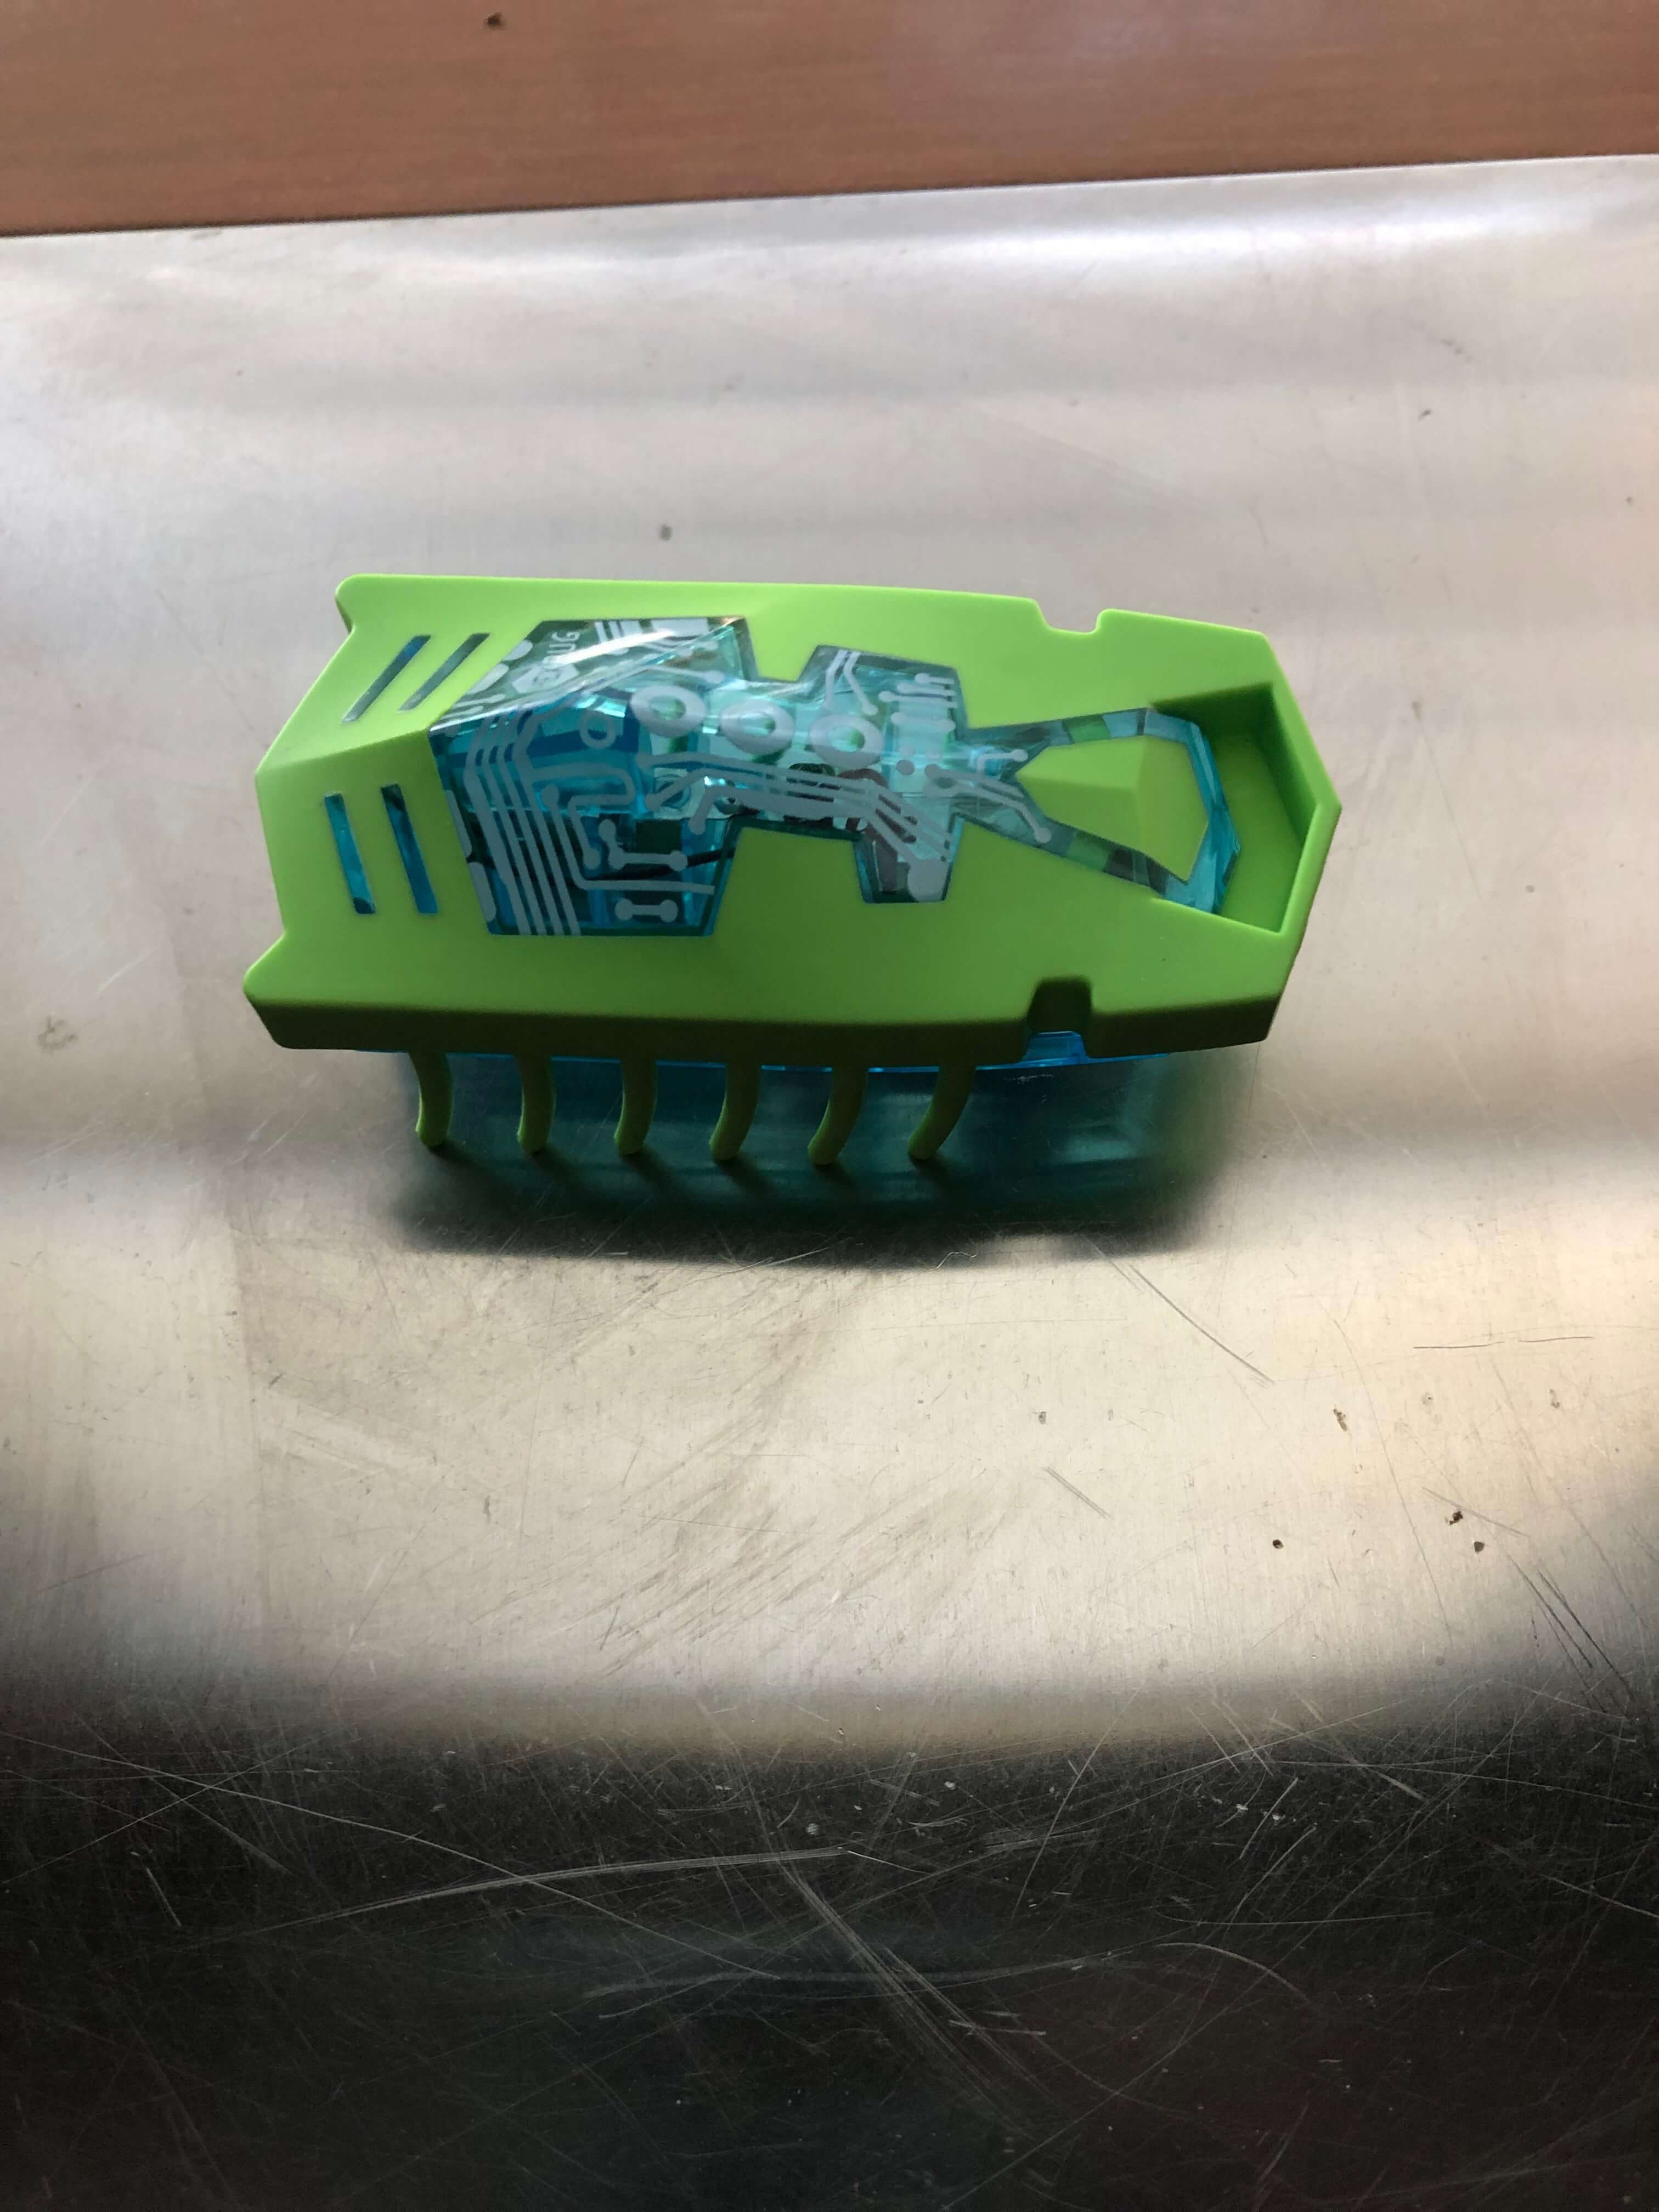 My New HexBug